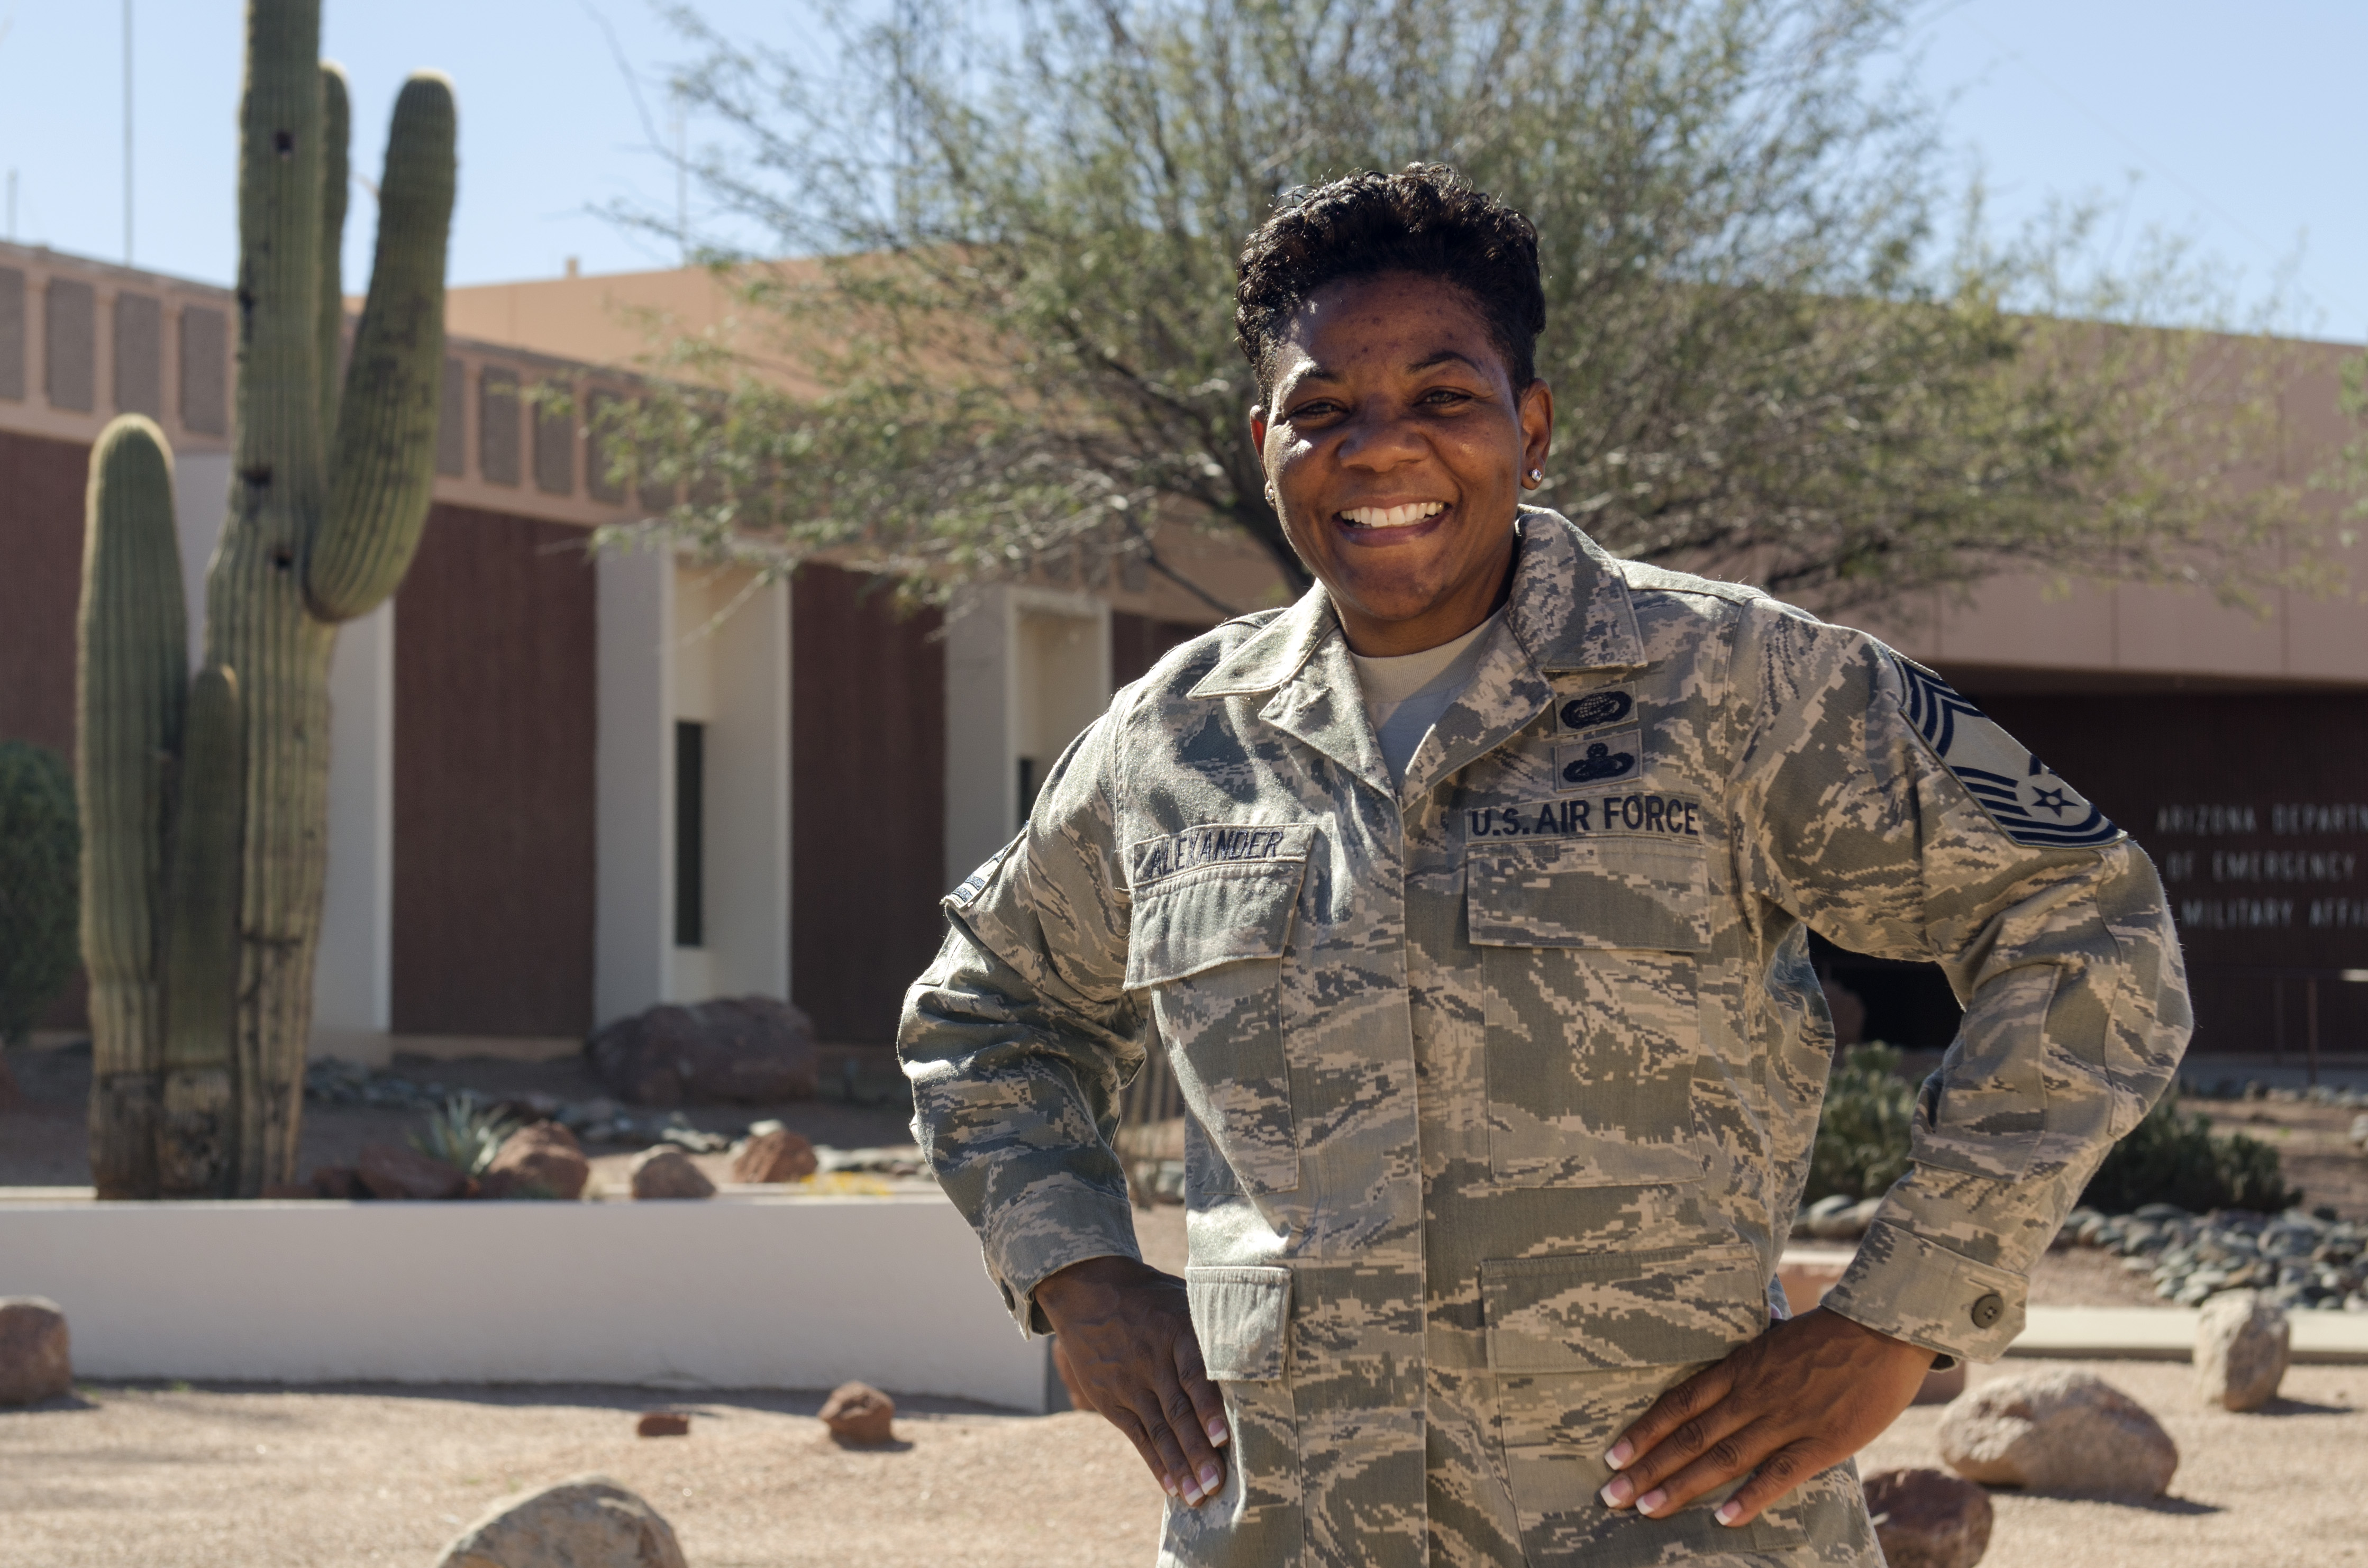 Air Force Chief Master Sgt. Barbara Alexander stands in front of Joint Force Headquarters building